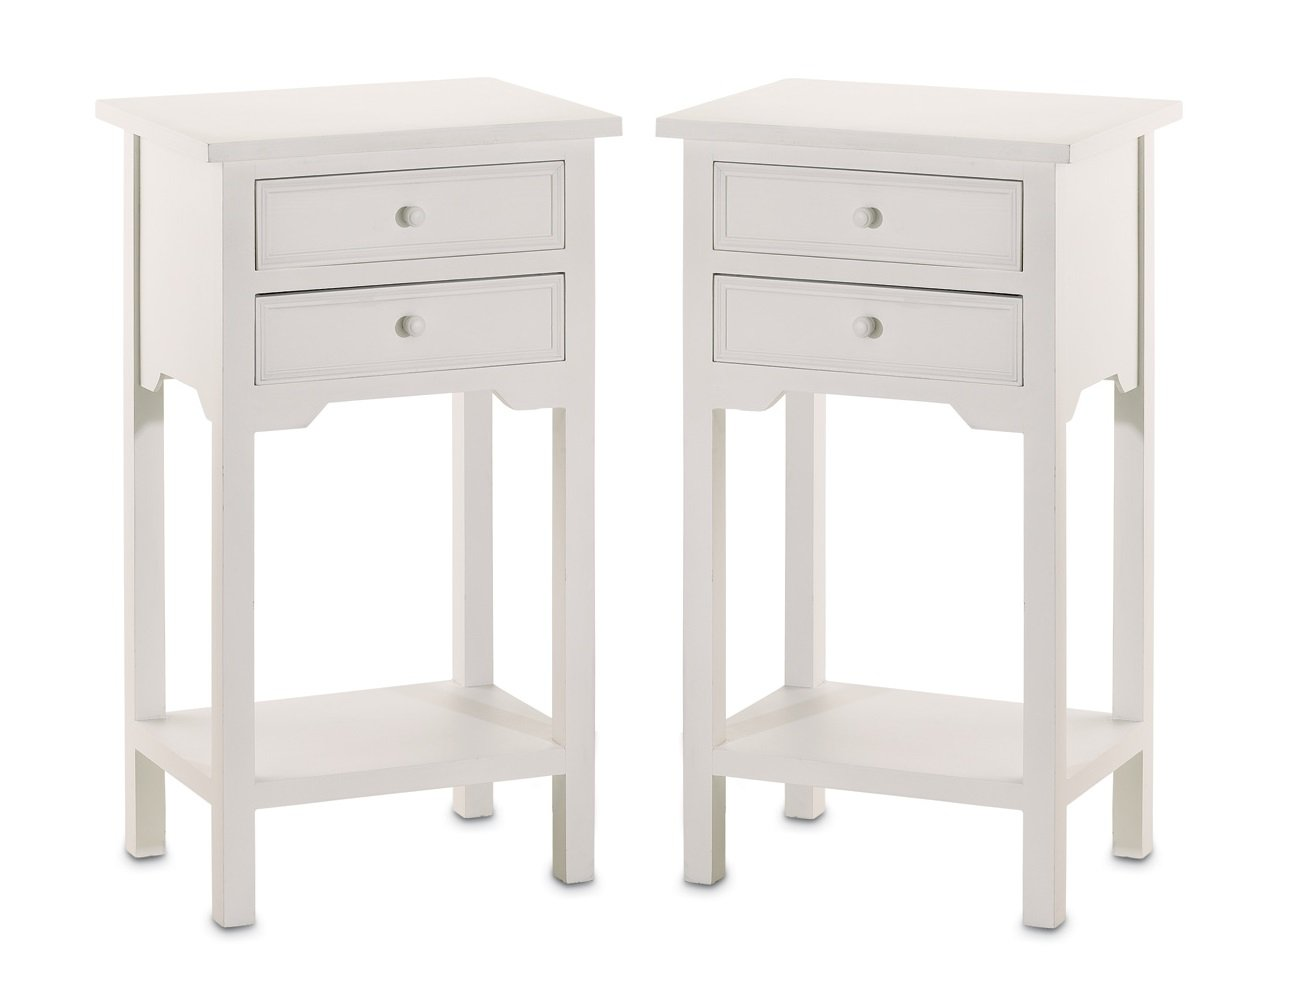 table with drawers. amazon.com: set of 2 wood white end tables nightstands with two drawers: kitchen \u0026 dining table drawers s